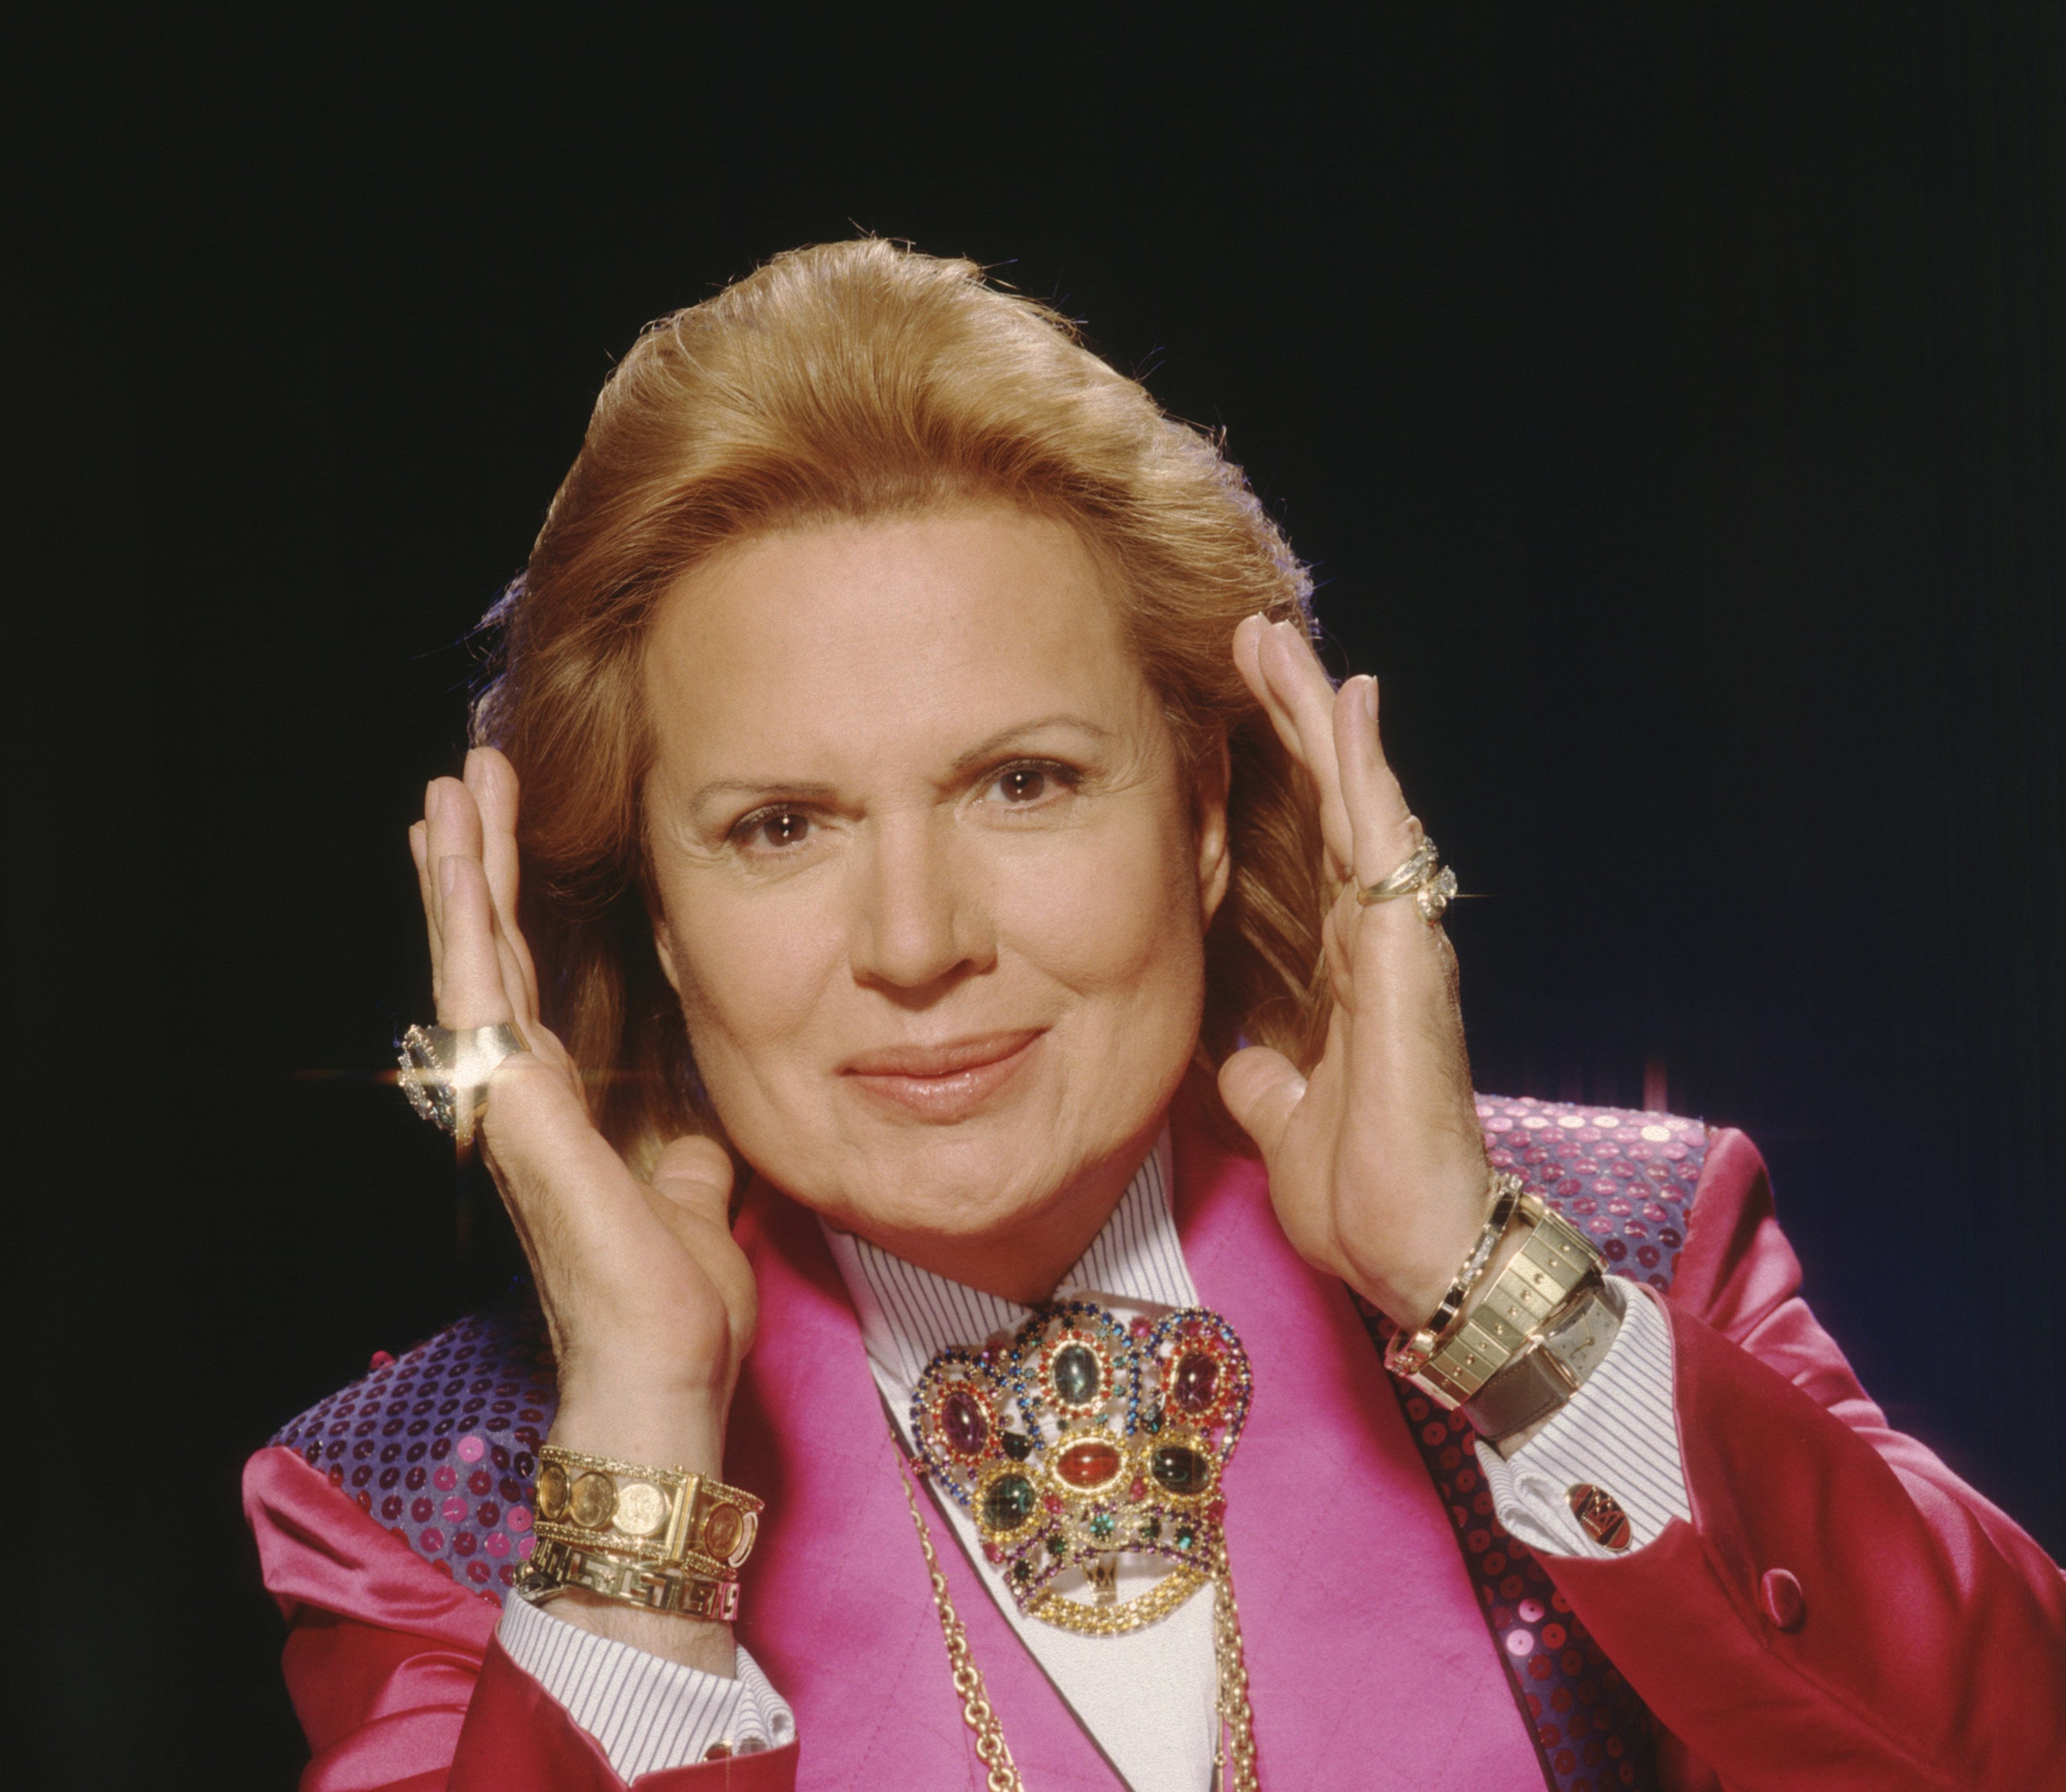 Psychic Walter Mercado poses for a portrait in 2001 in Los Angeles, California.